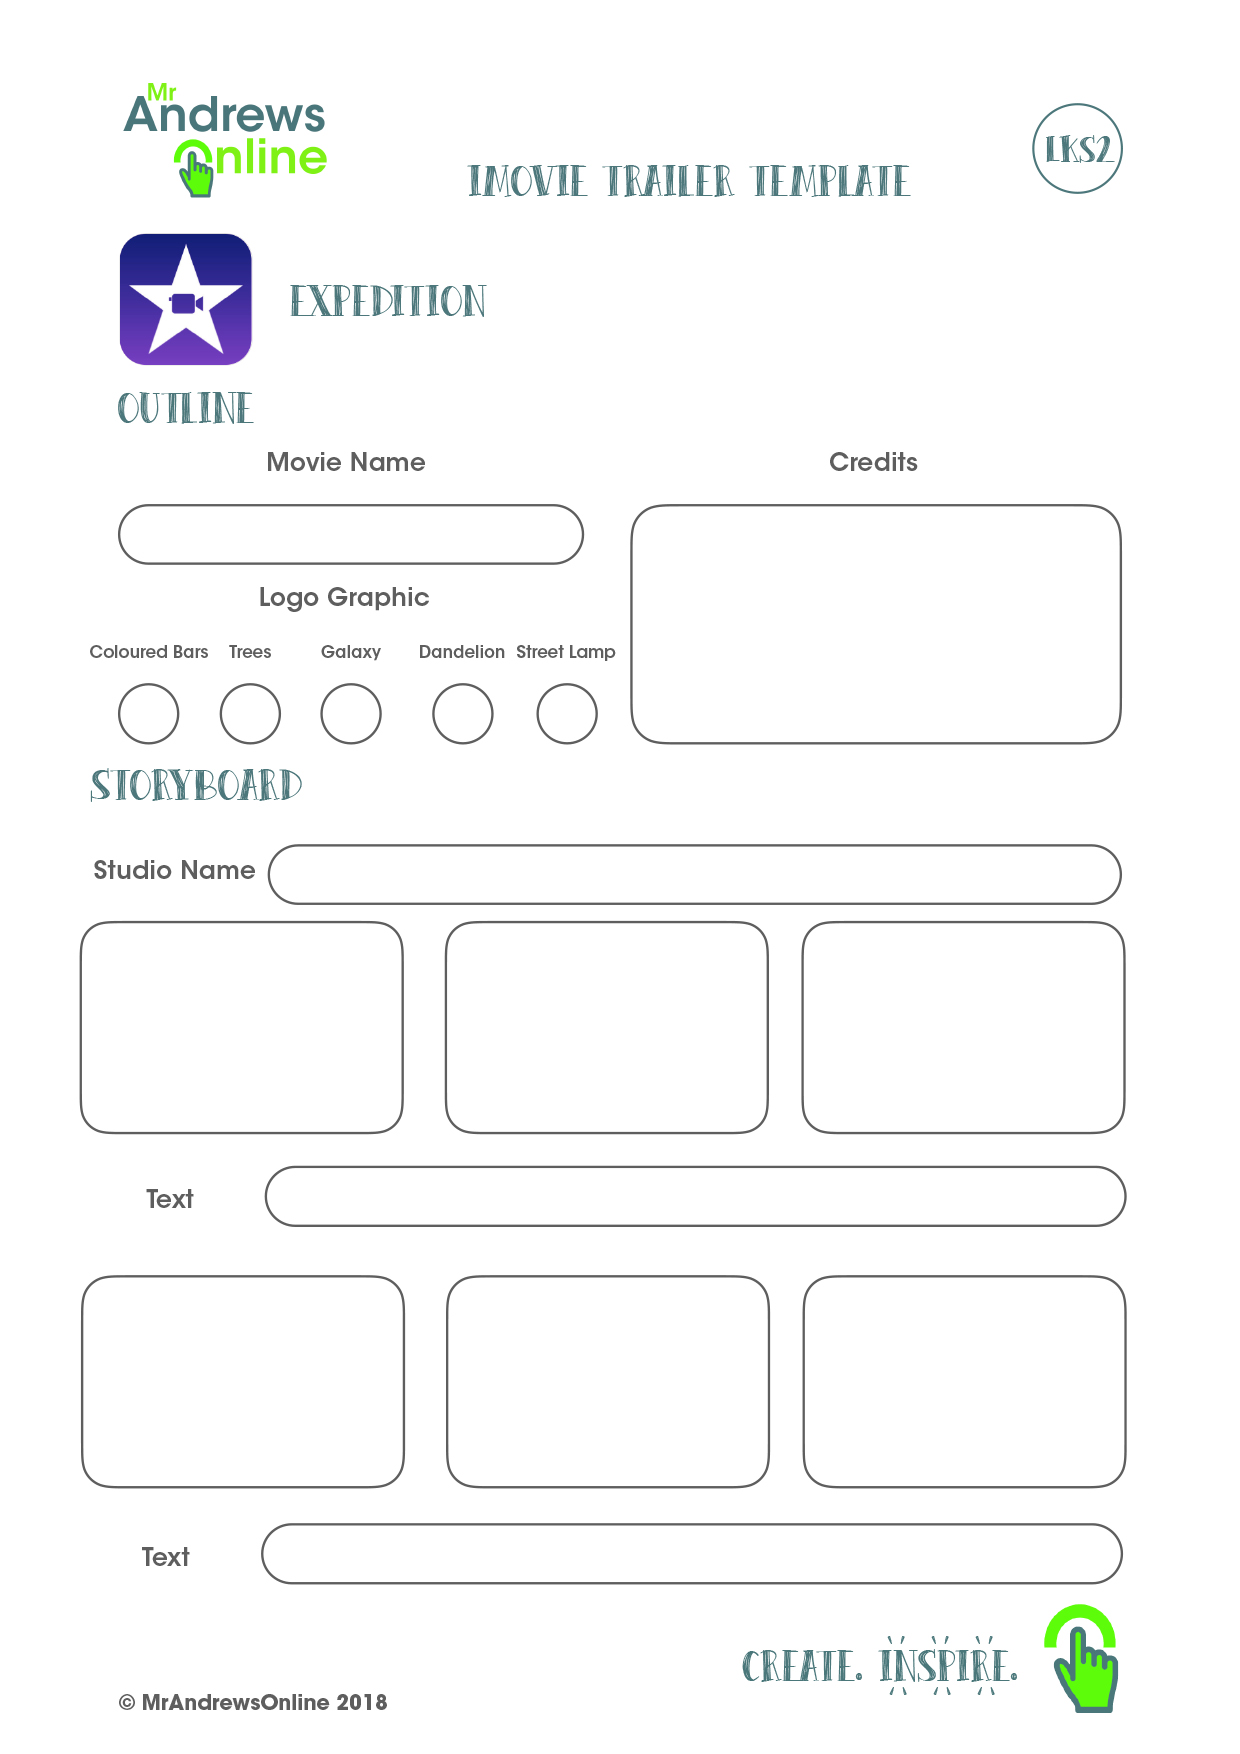 Imovie Trailer Template Page 2 Copy Mr Andrews Online